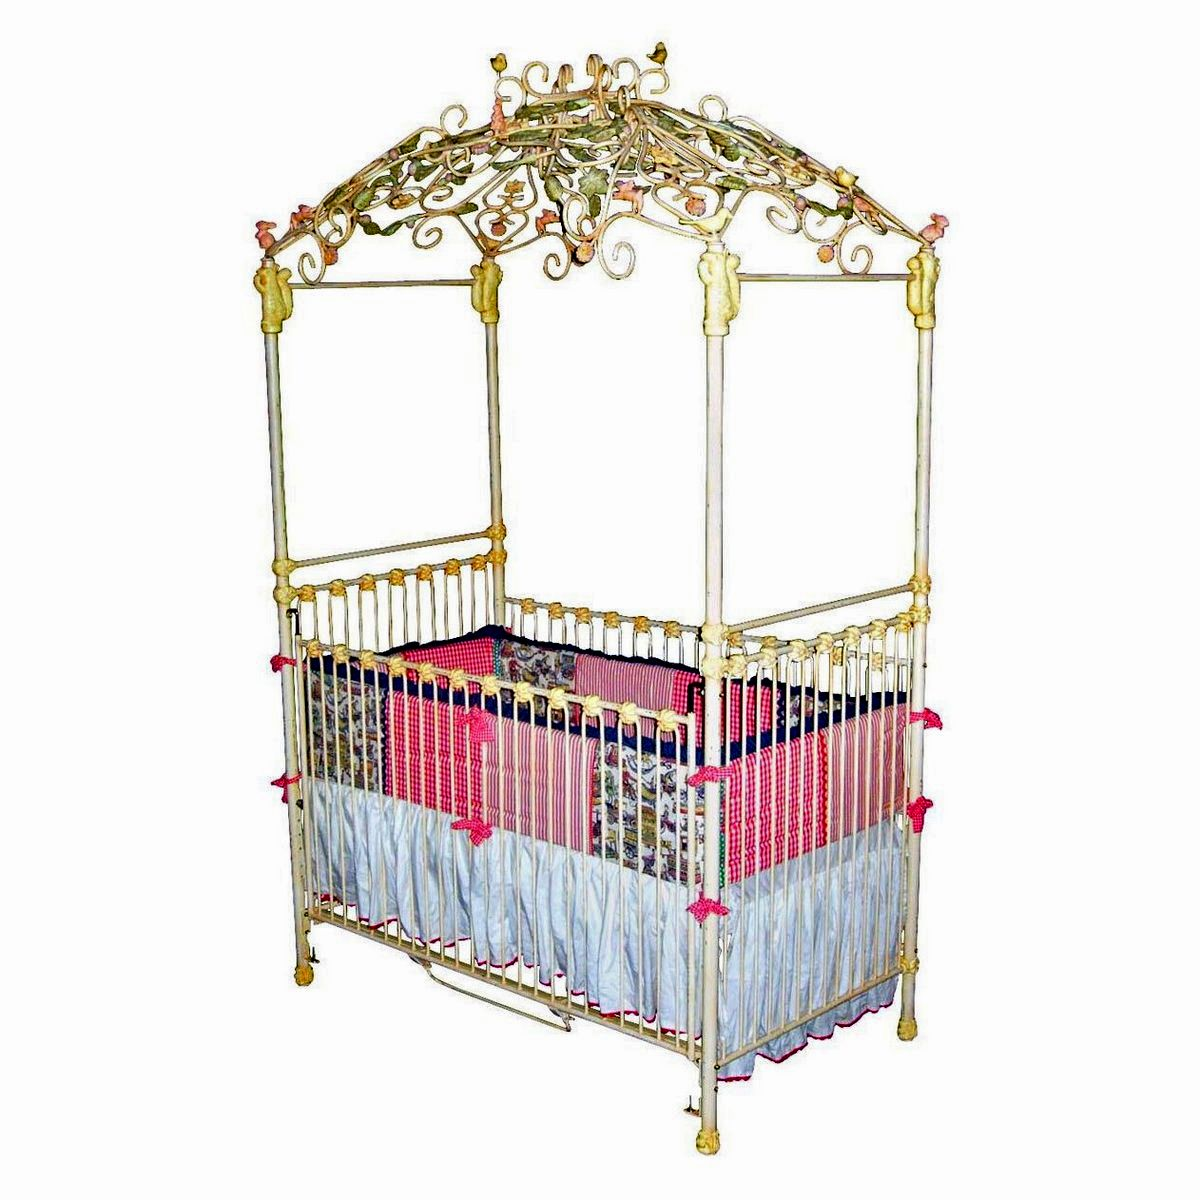 Some Safety Tips For Using Iron Cribs  Wrought Iron Baby Crib.  sc 1 st  Pinterest & Wrought Iron Baby Crib | Some Safety Tips for Using Iron Cribs ...